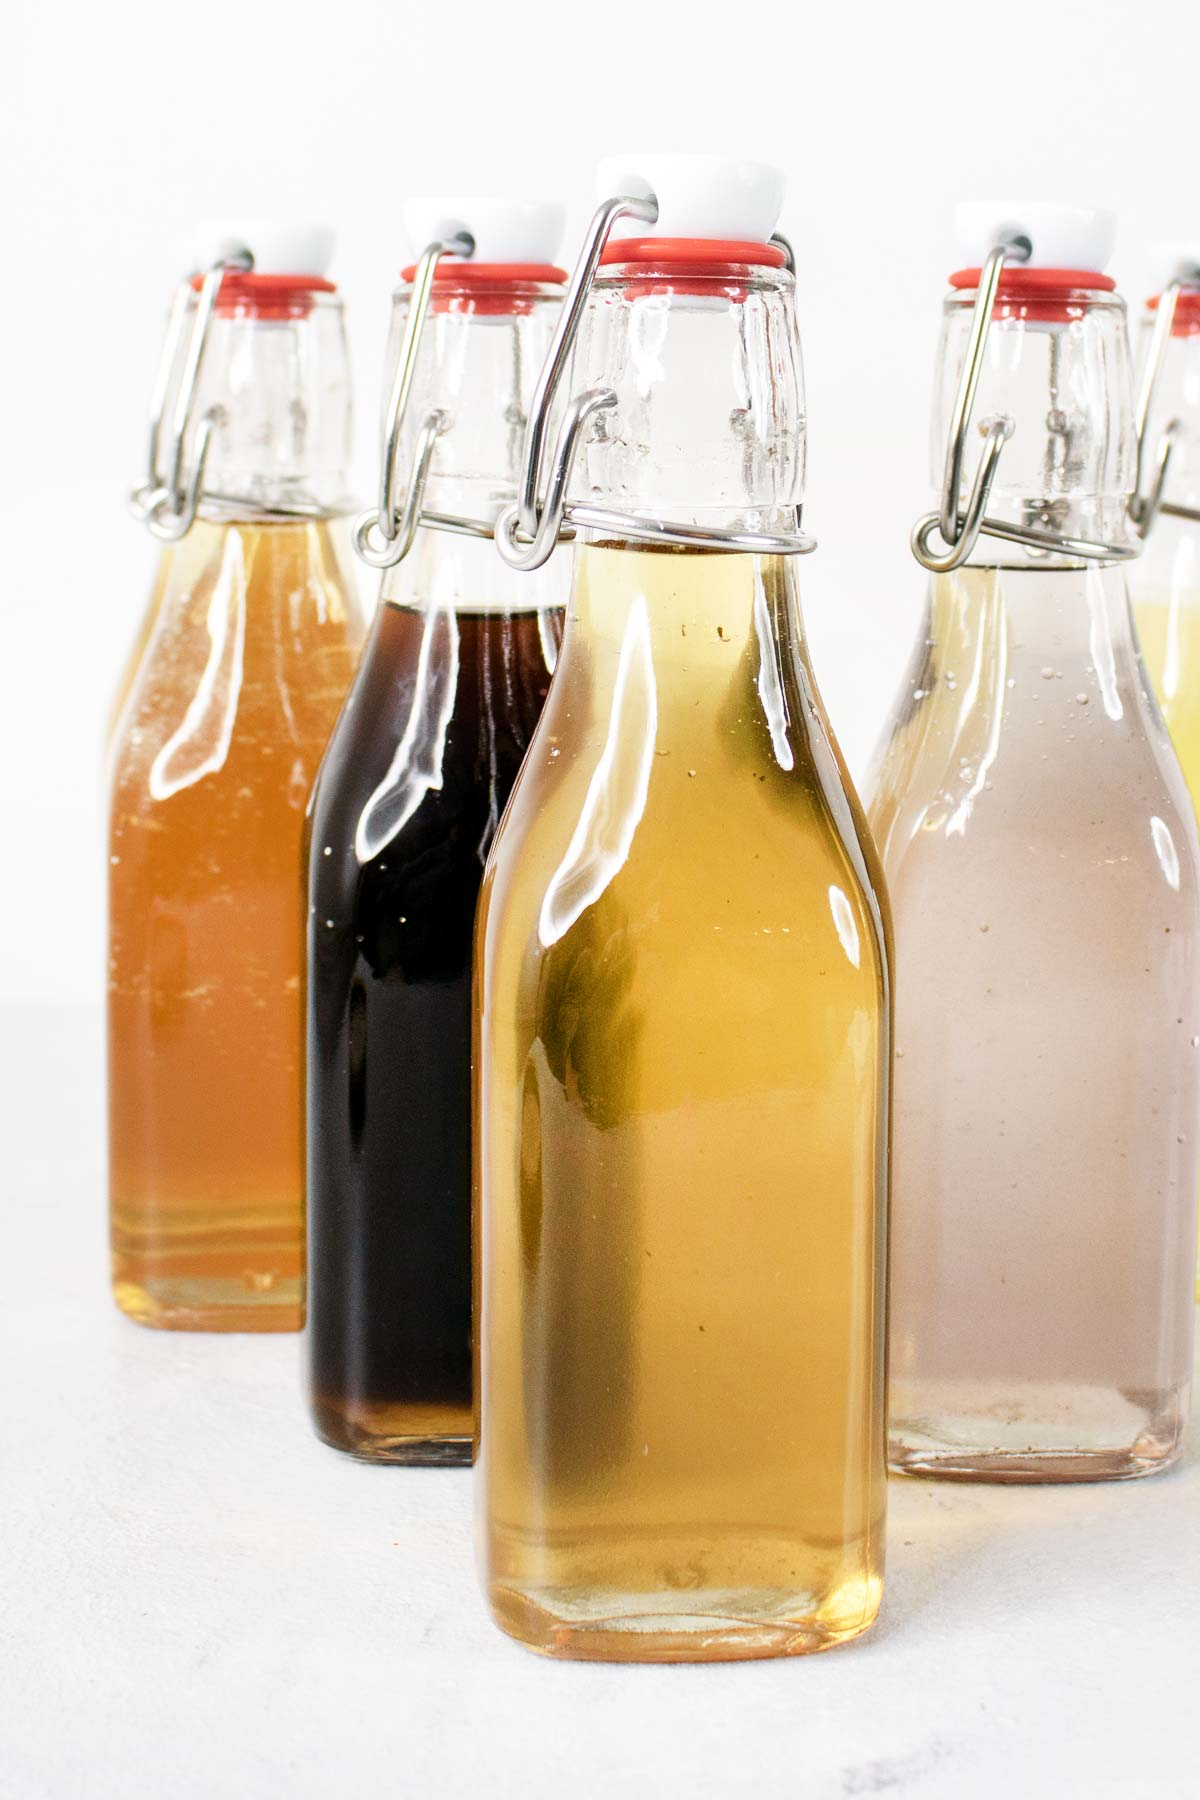 Simple syrups in glass bottles.